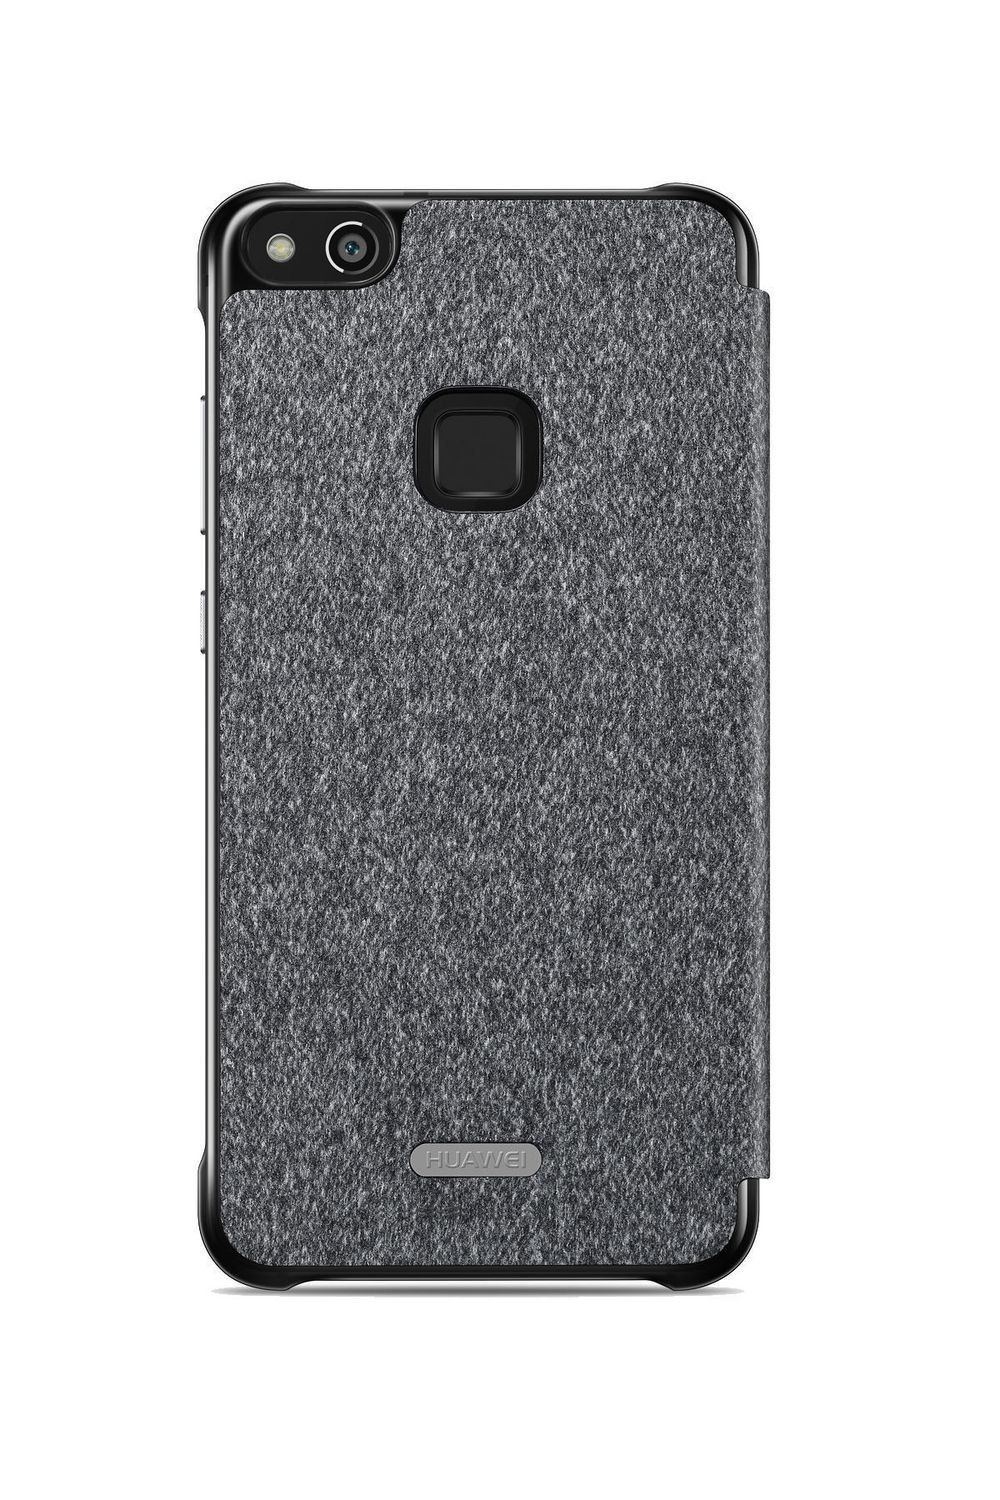 new product 2ffe8 5e8ca Huawei Smart View Cover for P10 Lite Light Grey